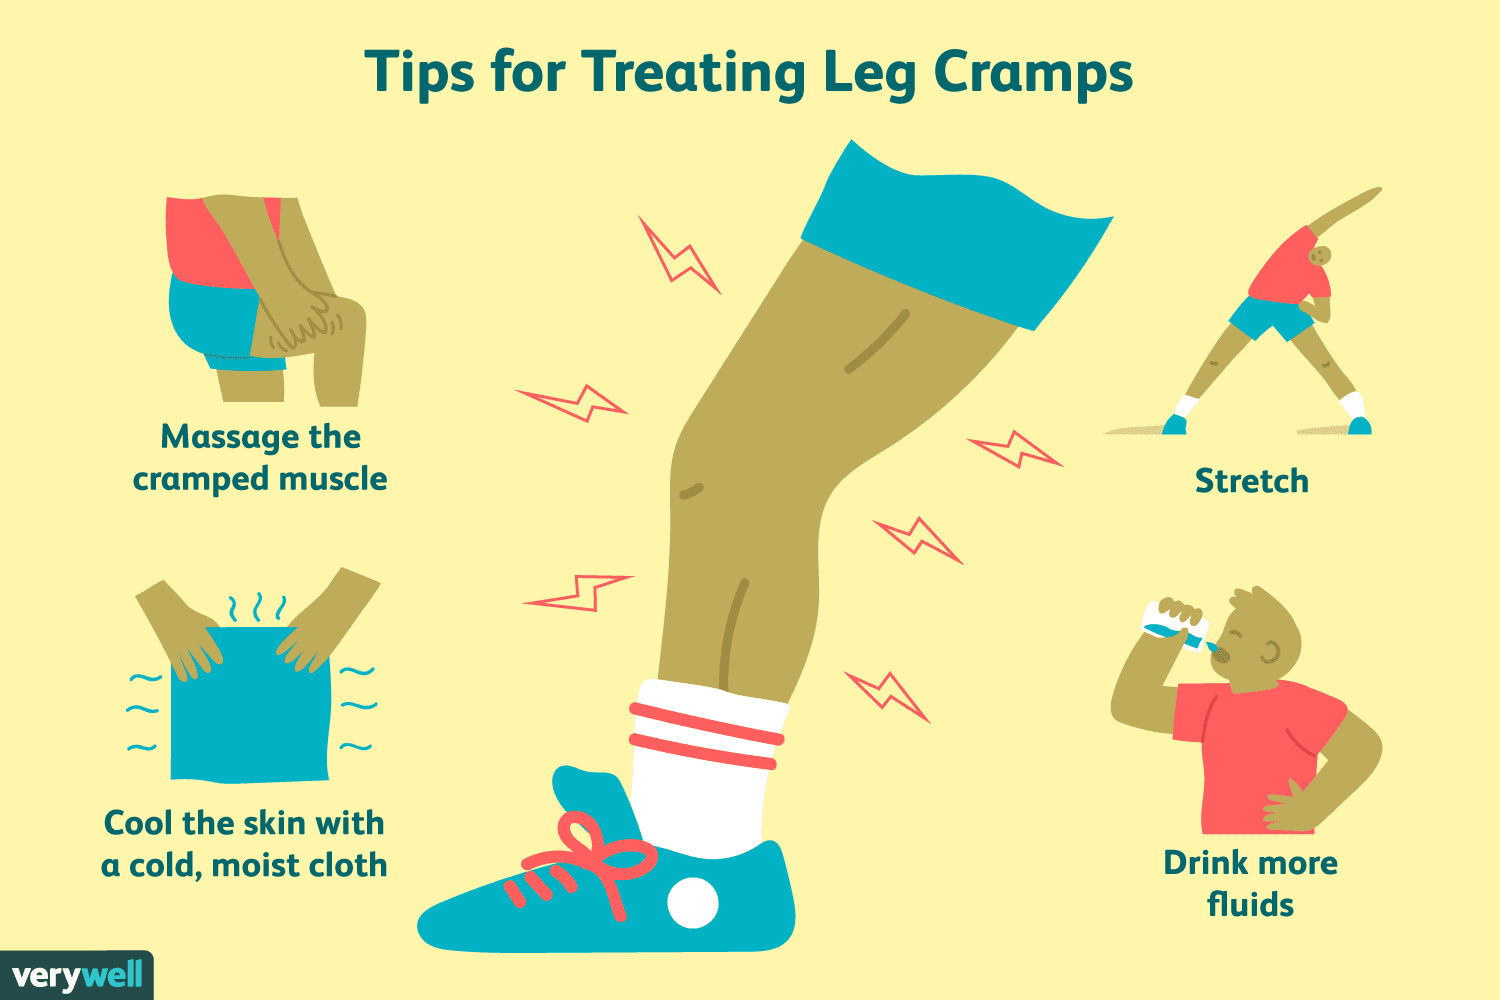 How to Treat and Prevent Leg Cramps